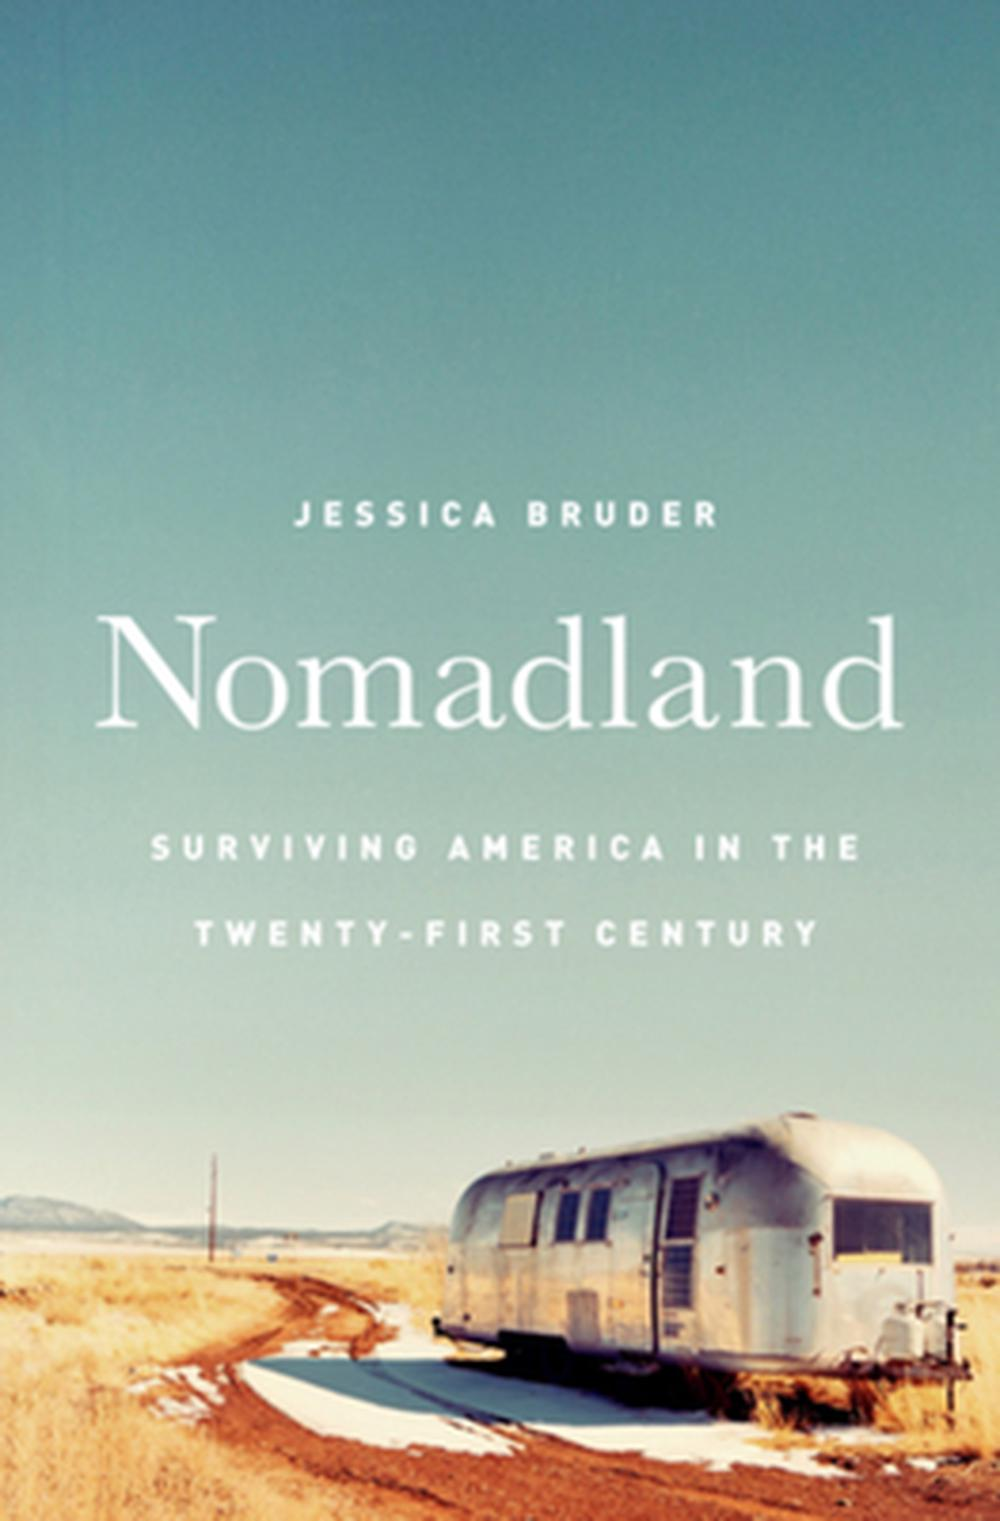 NomadlandSurviving America in the Twenty-First Century